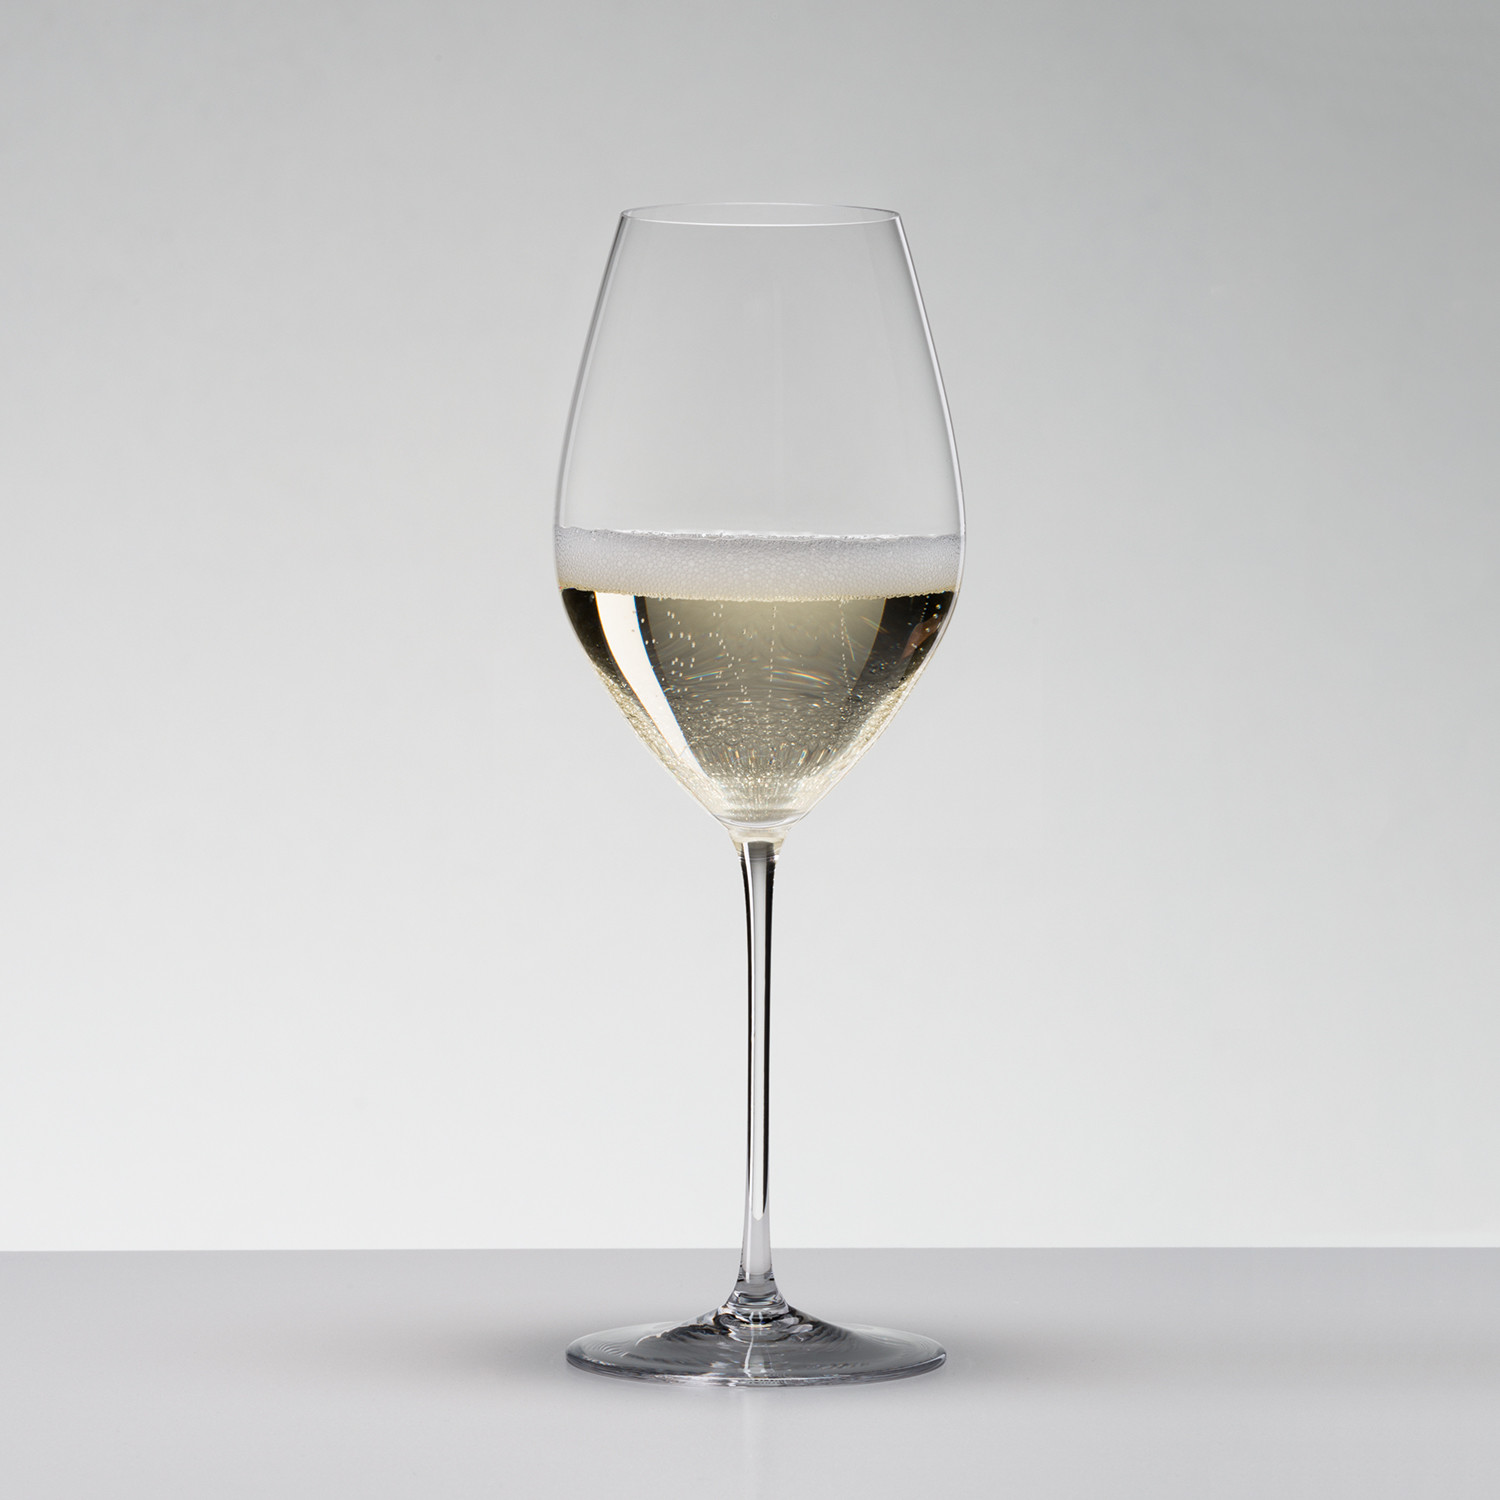 230a27c31e54 Veritas    Champagne Wine Glass    Set of 2 - Riedel - Touch of Modern